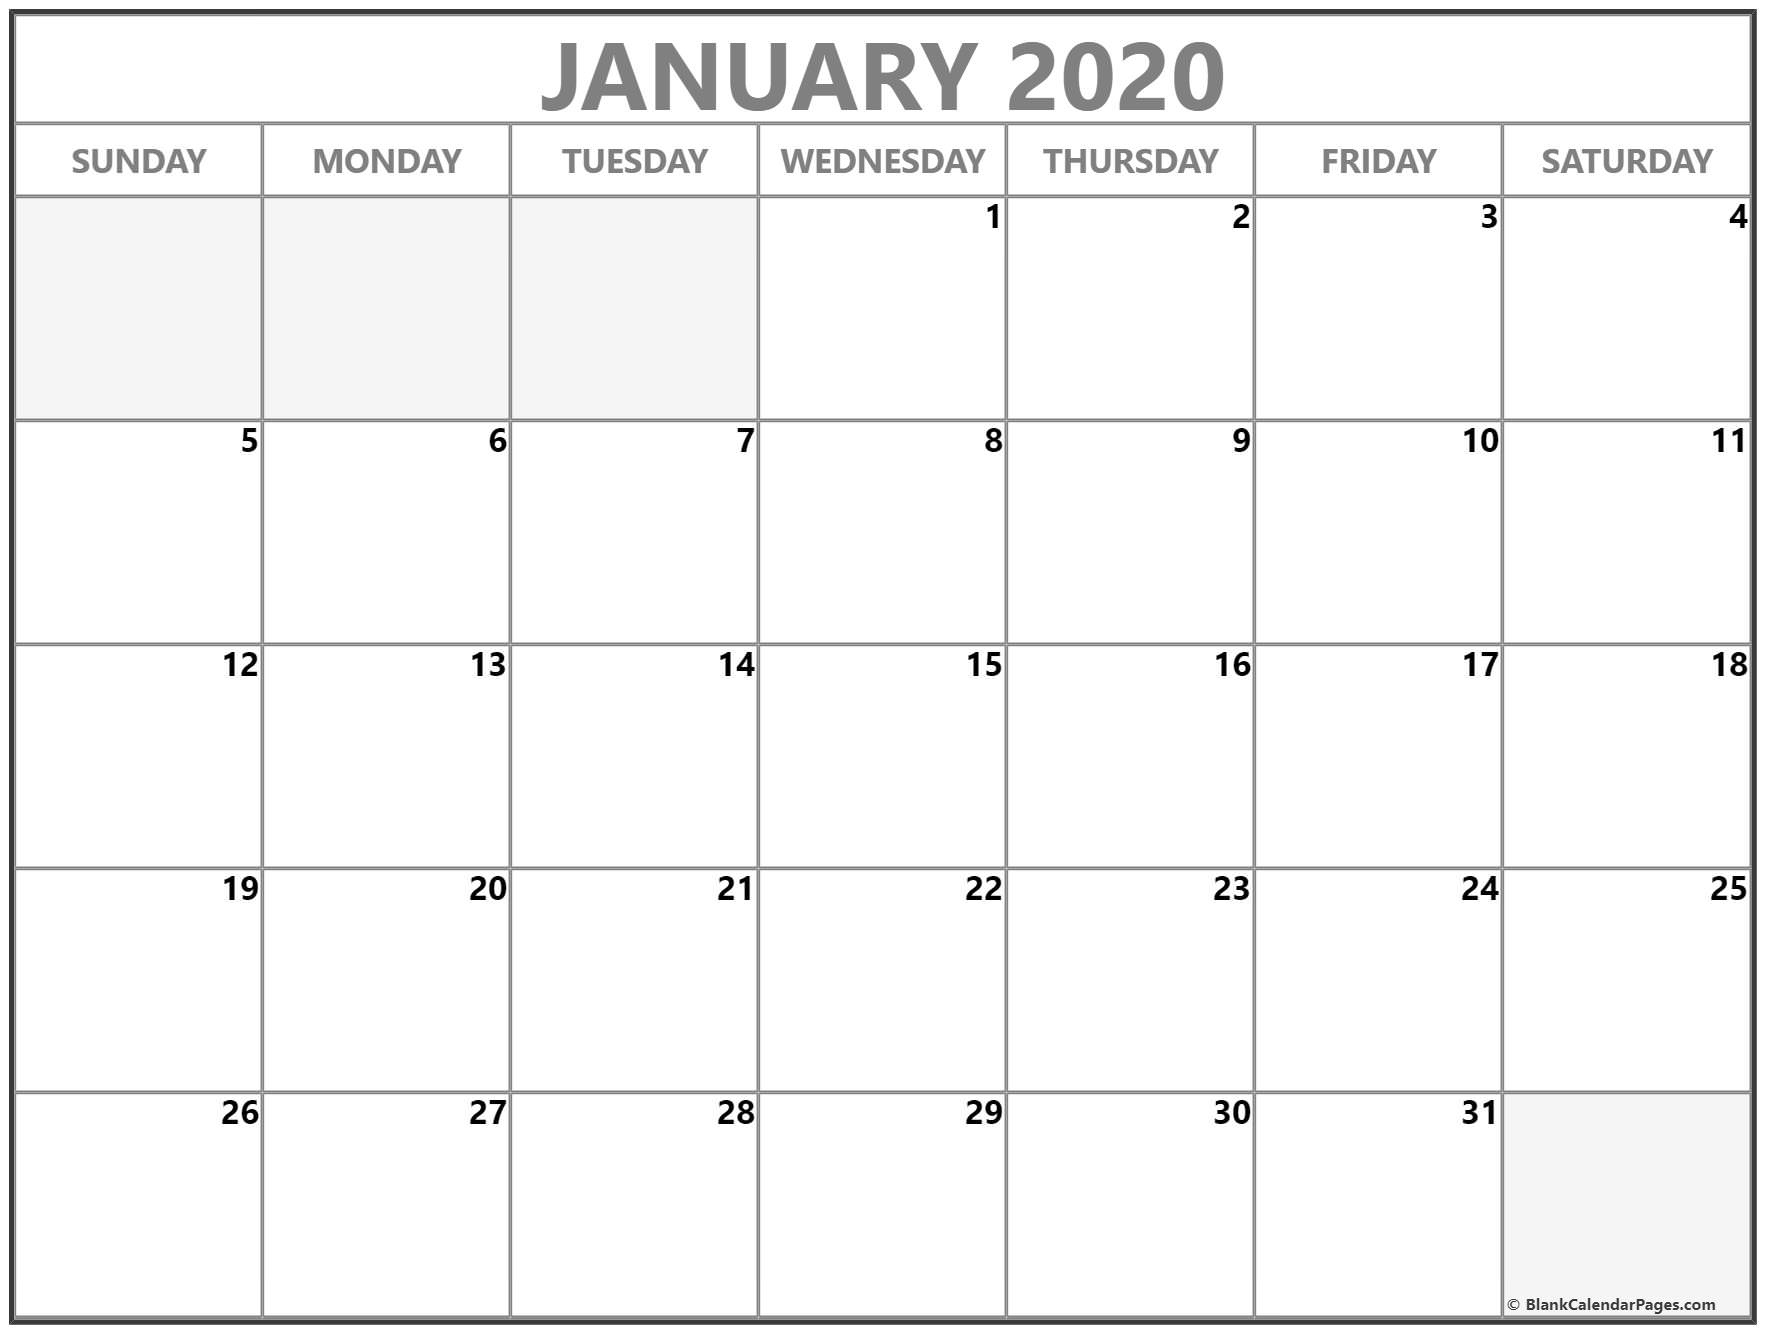 January 2020 Calendar | Free Printable Monthly Calendars Extraordinary January 2020 Printable Calendar Canada